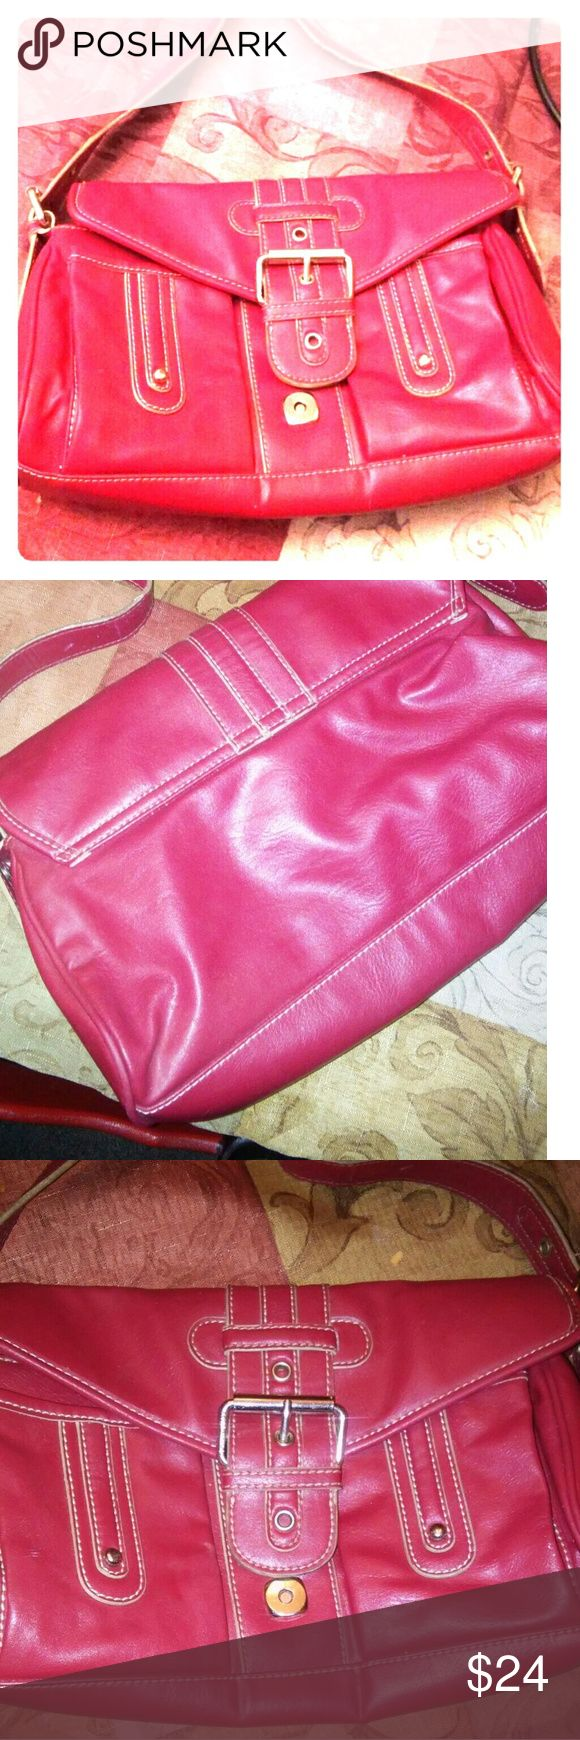 Tommy Hilfiger Purse Tommy Hilfiger Red Purse Tommy Hilfiger Bags